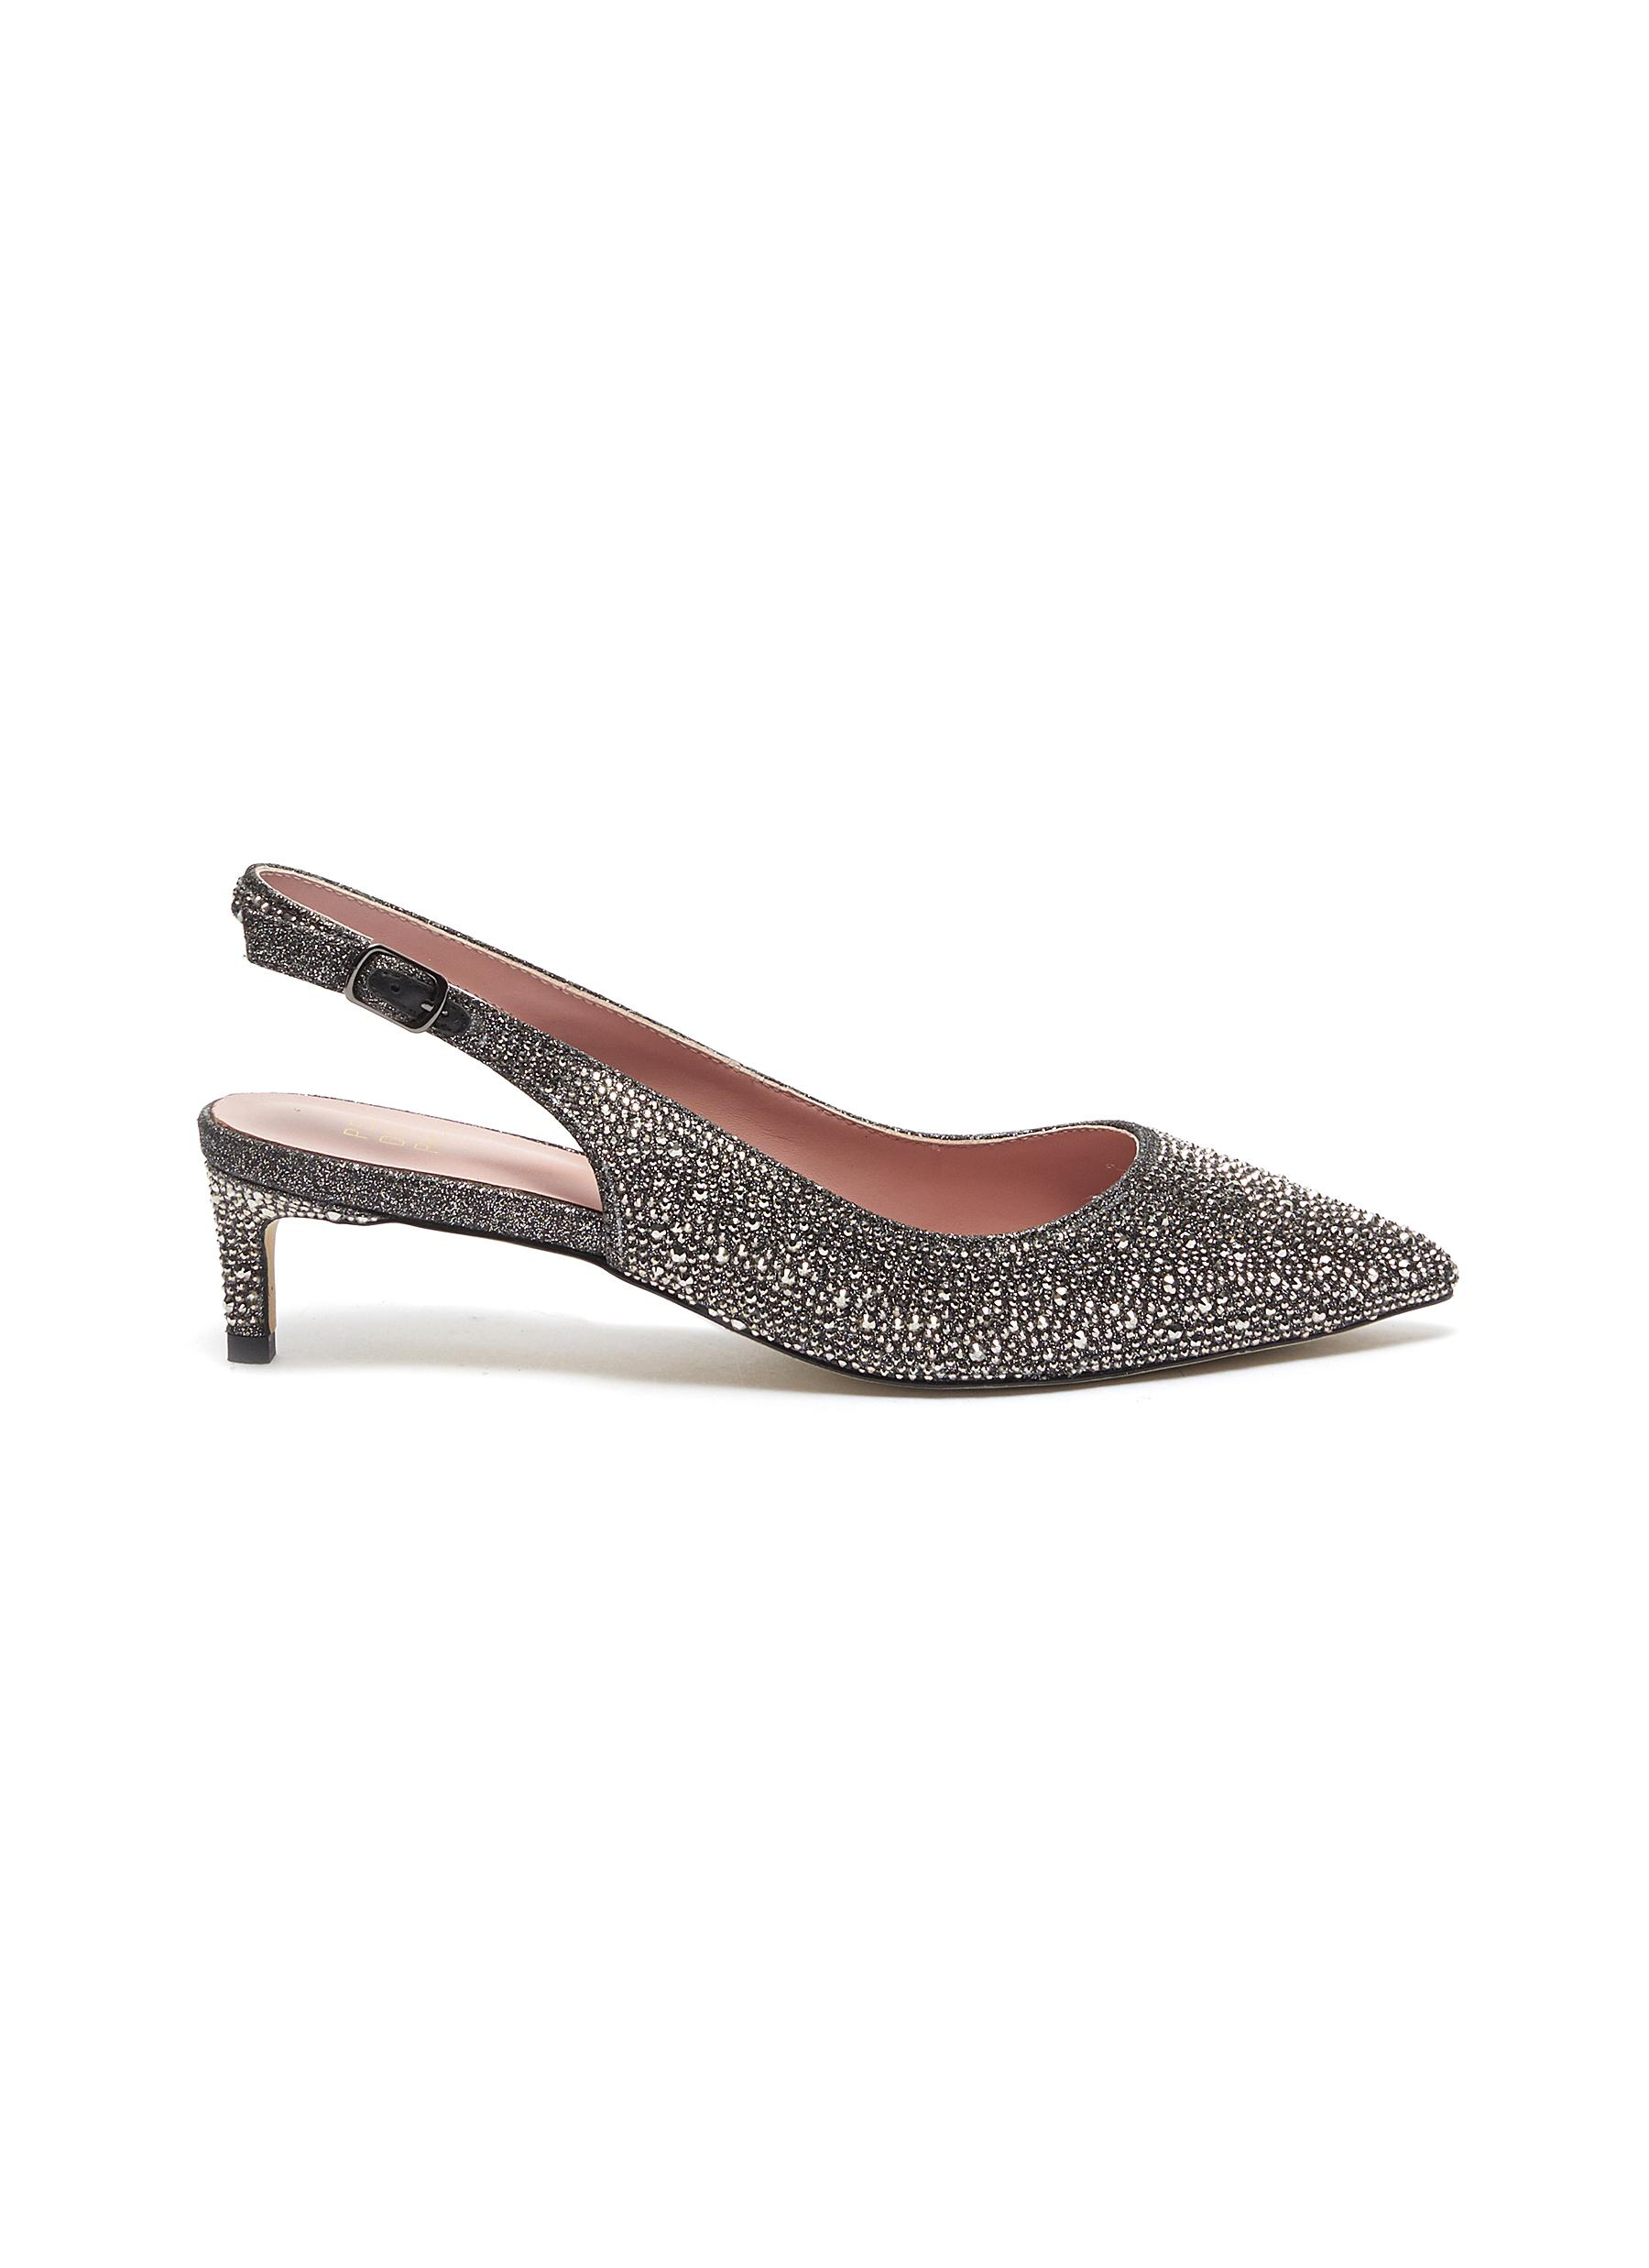 Taleen strass glitter slingback pumps by Pedder Red